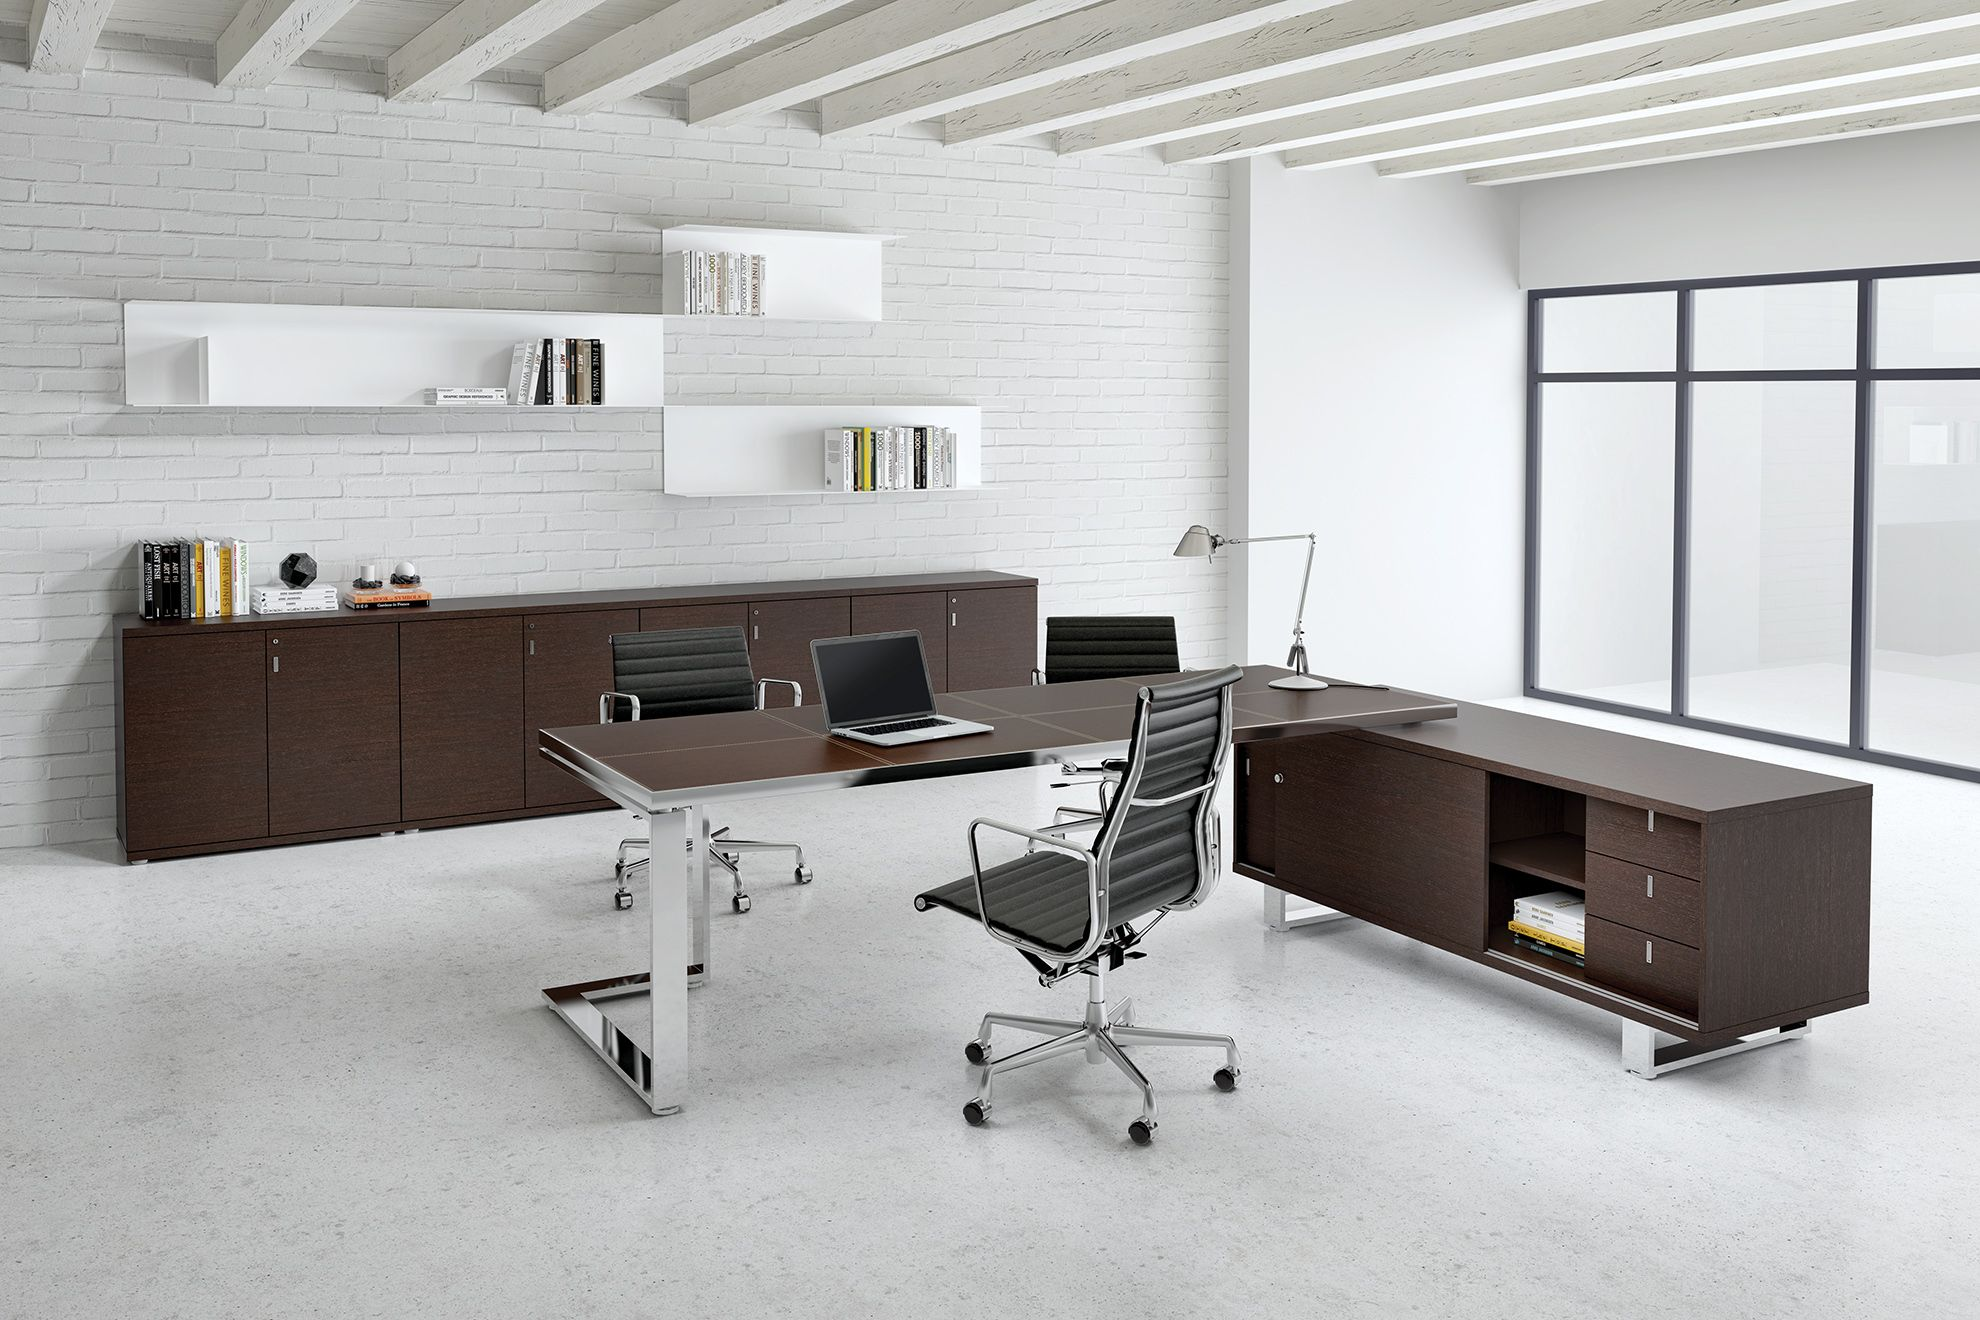 Desk kickstand furniture - Alea Archimede Executive Desk